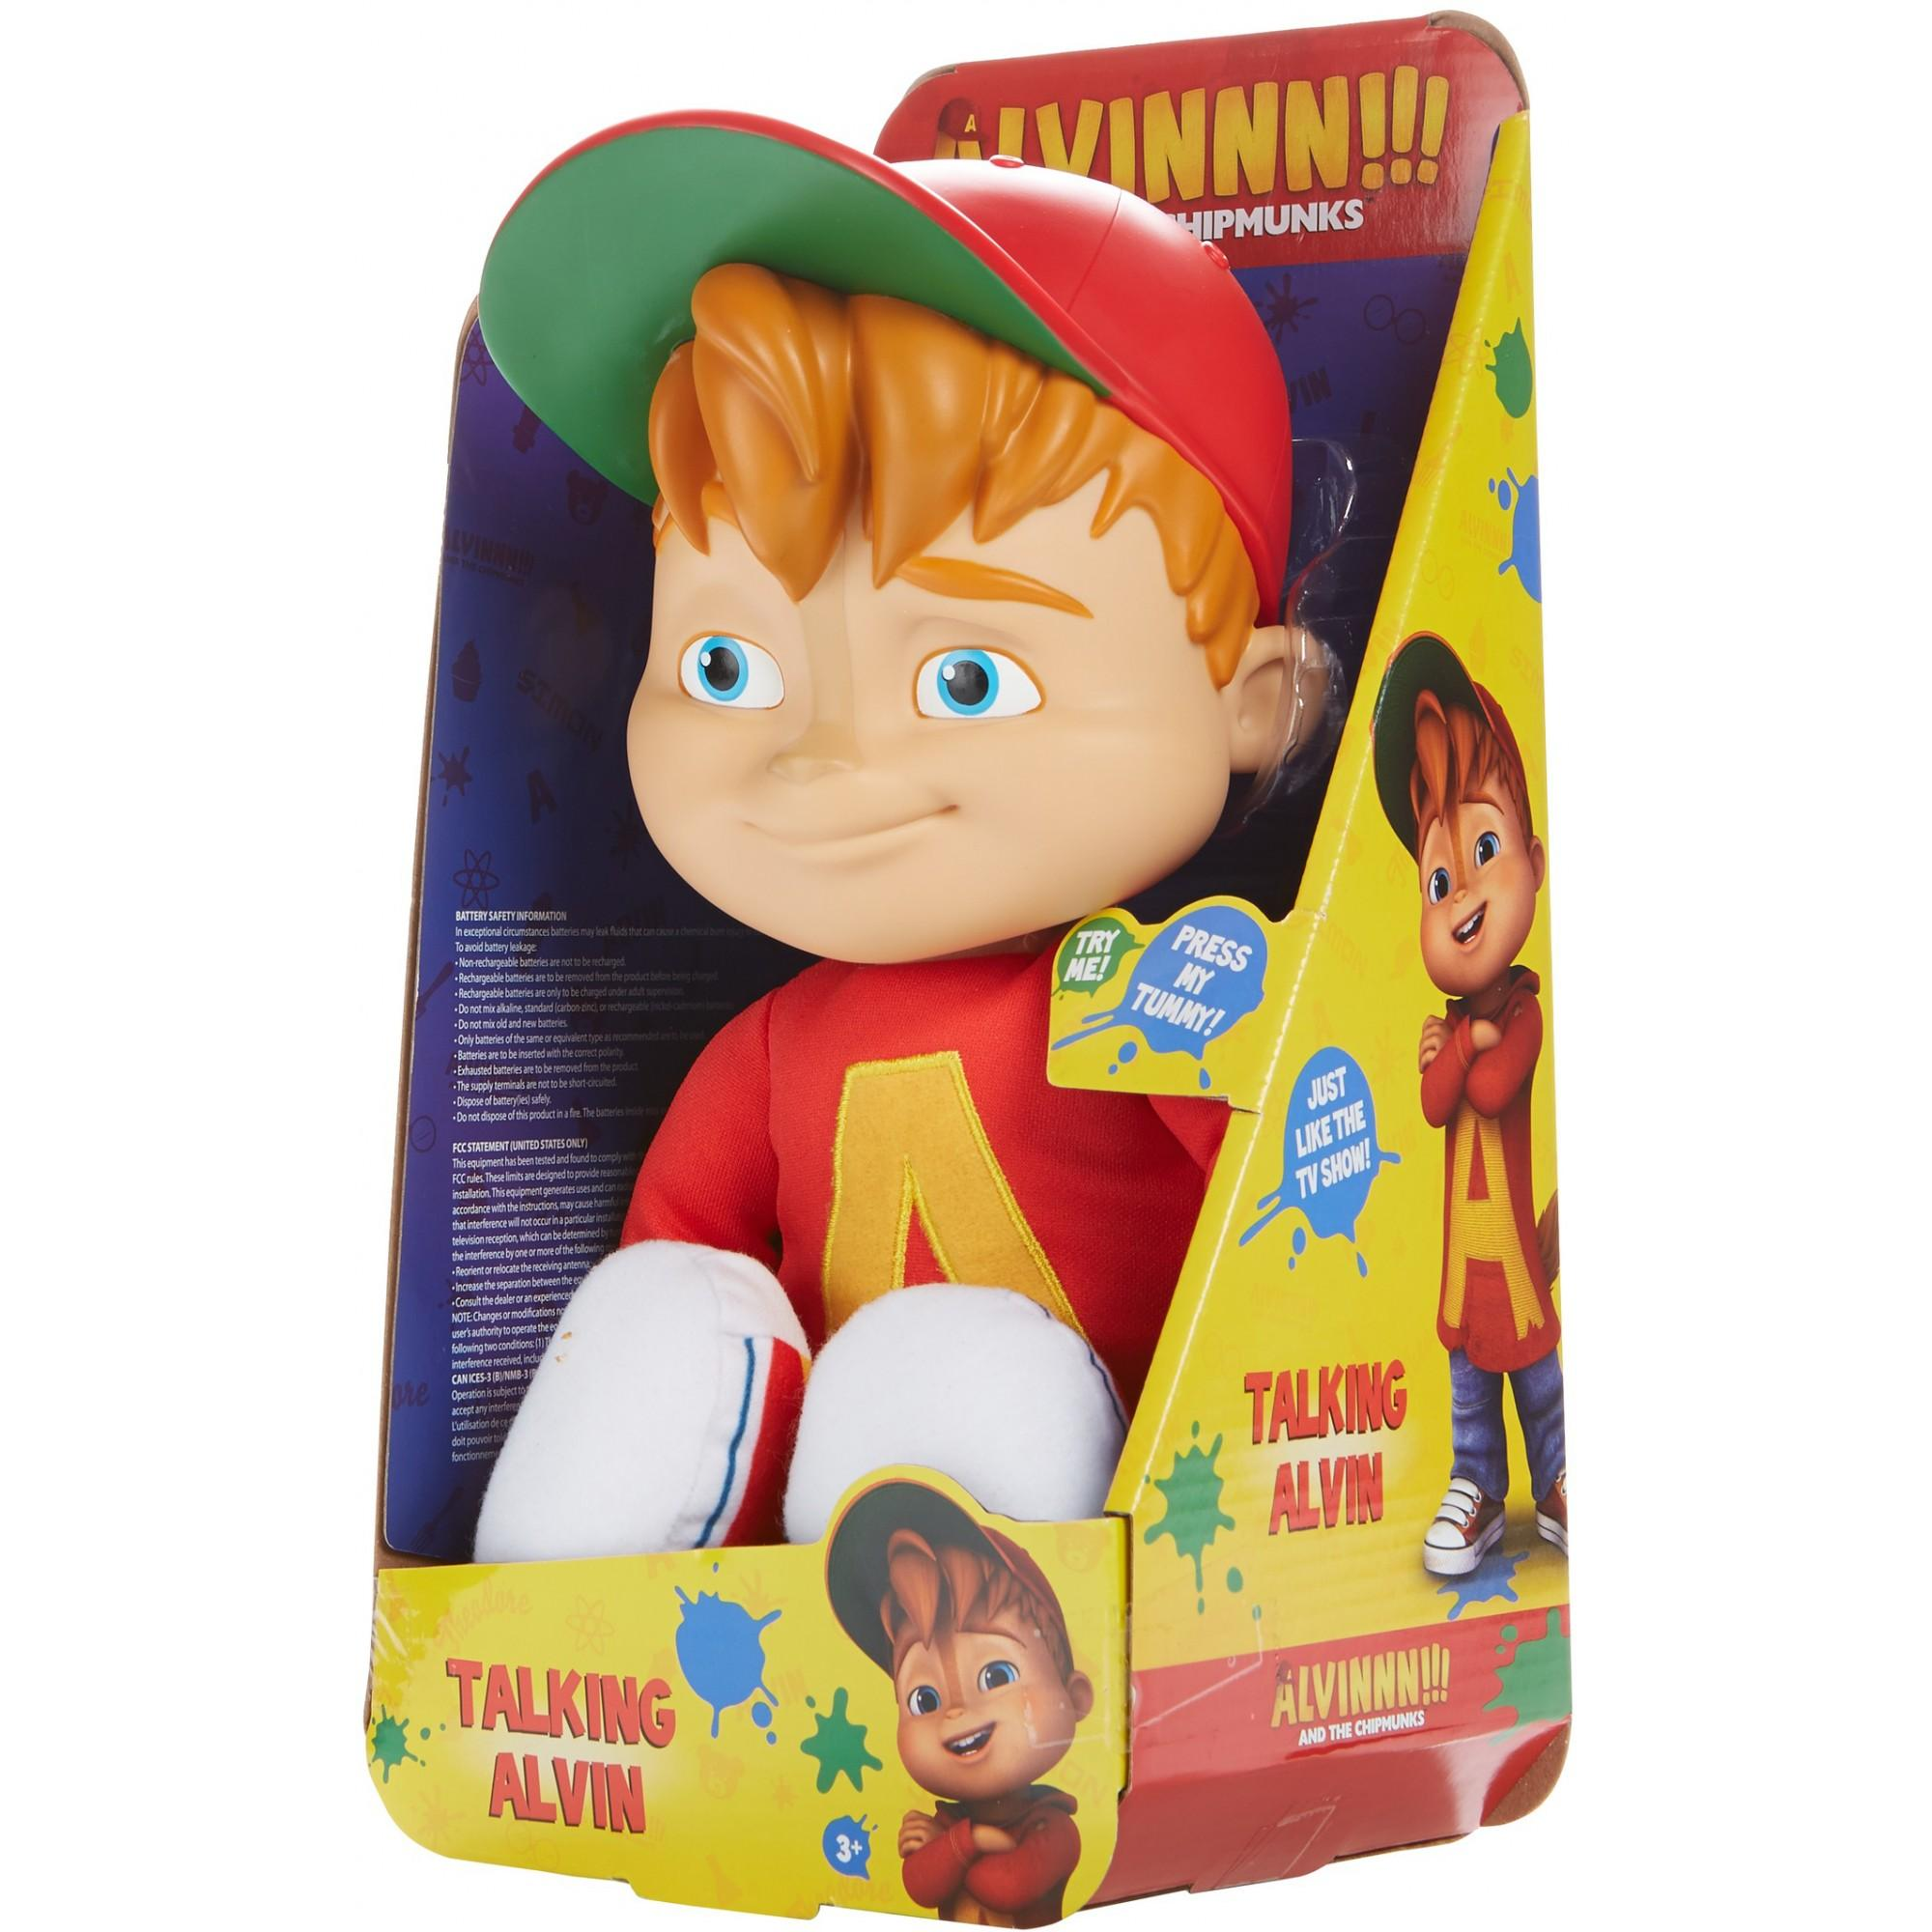 Recommend alvin 46 the chipmunks toys remarkable, very